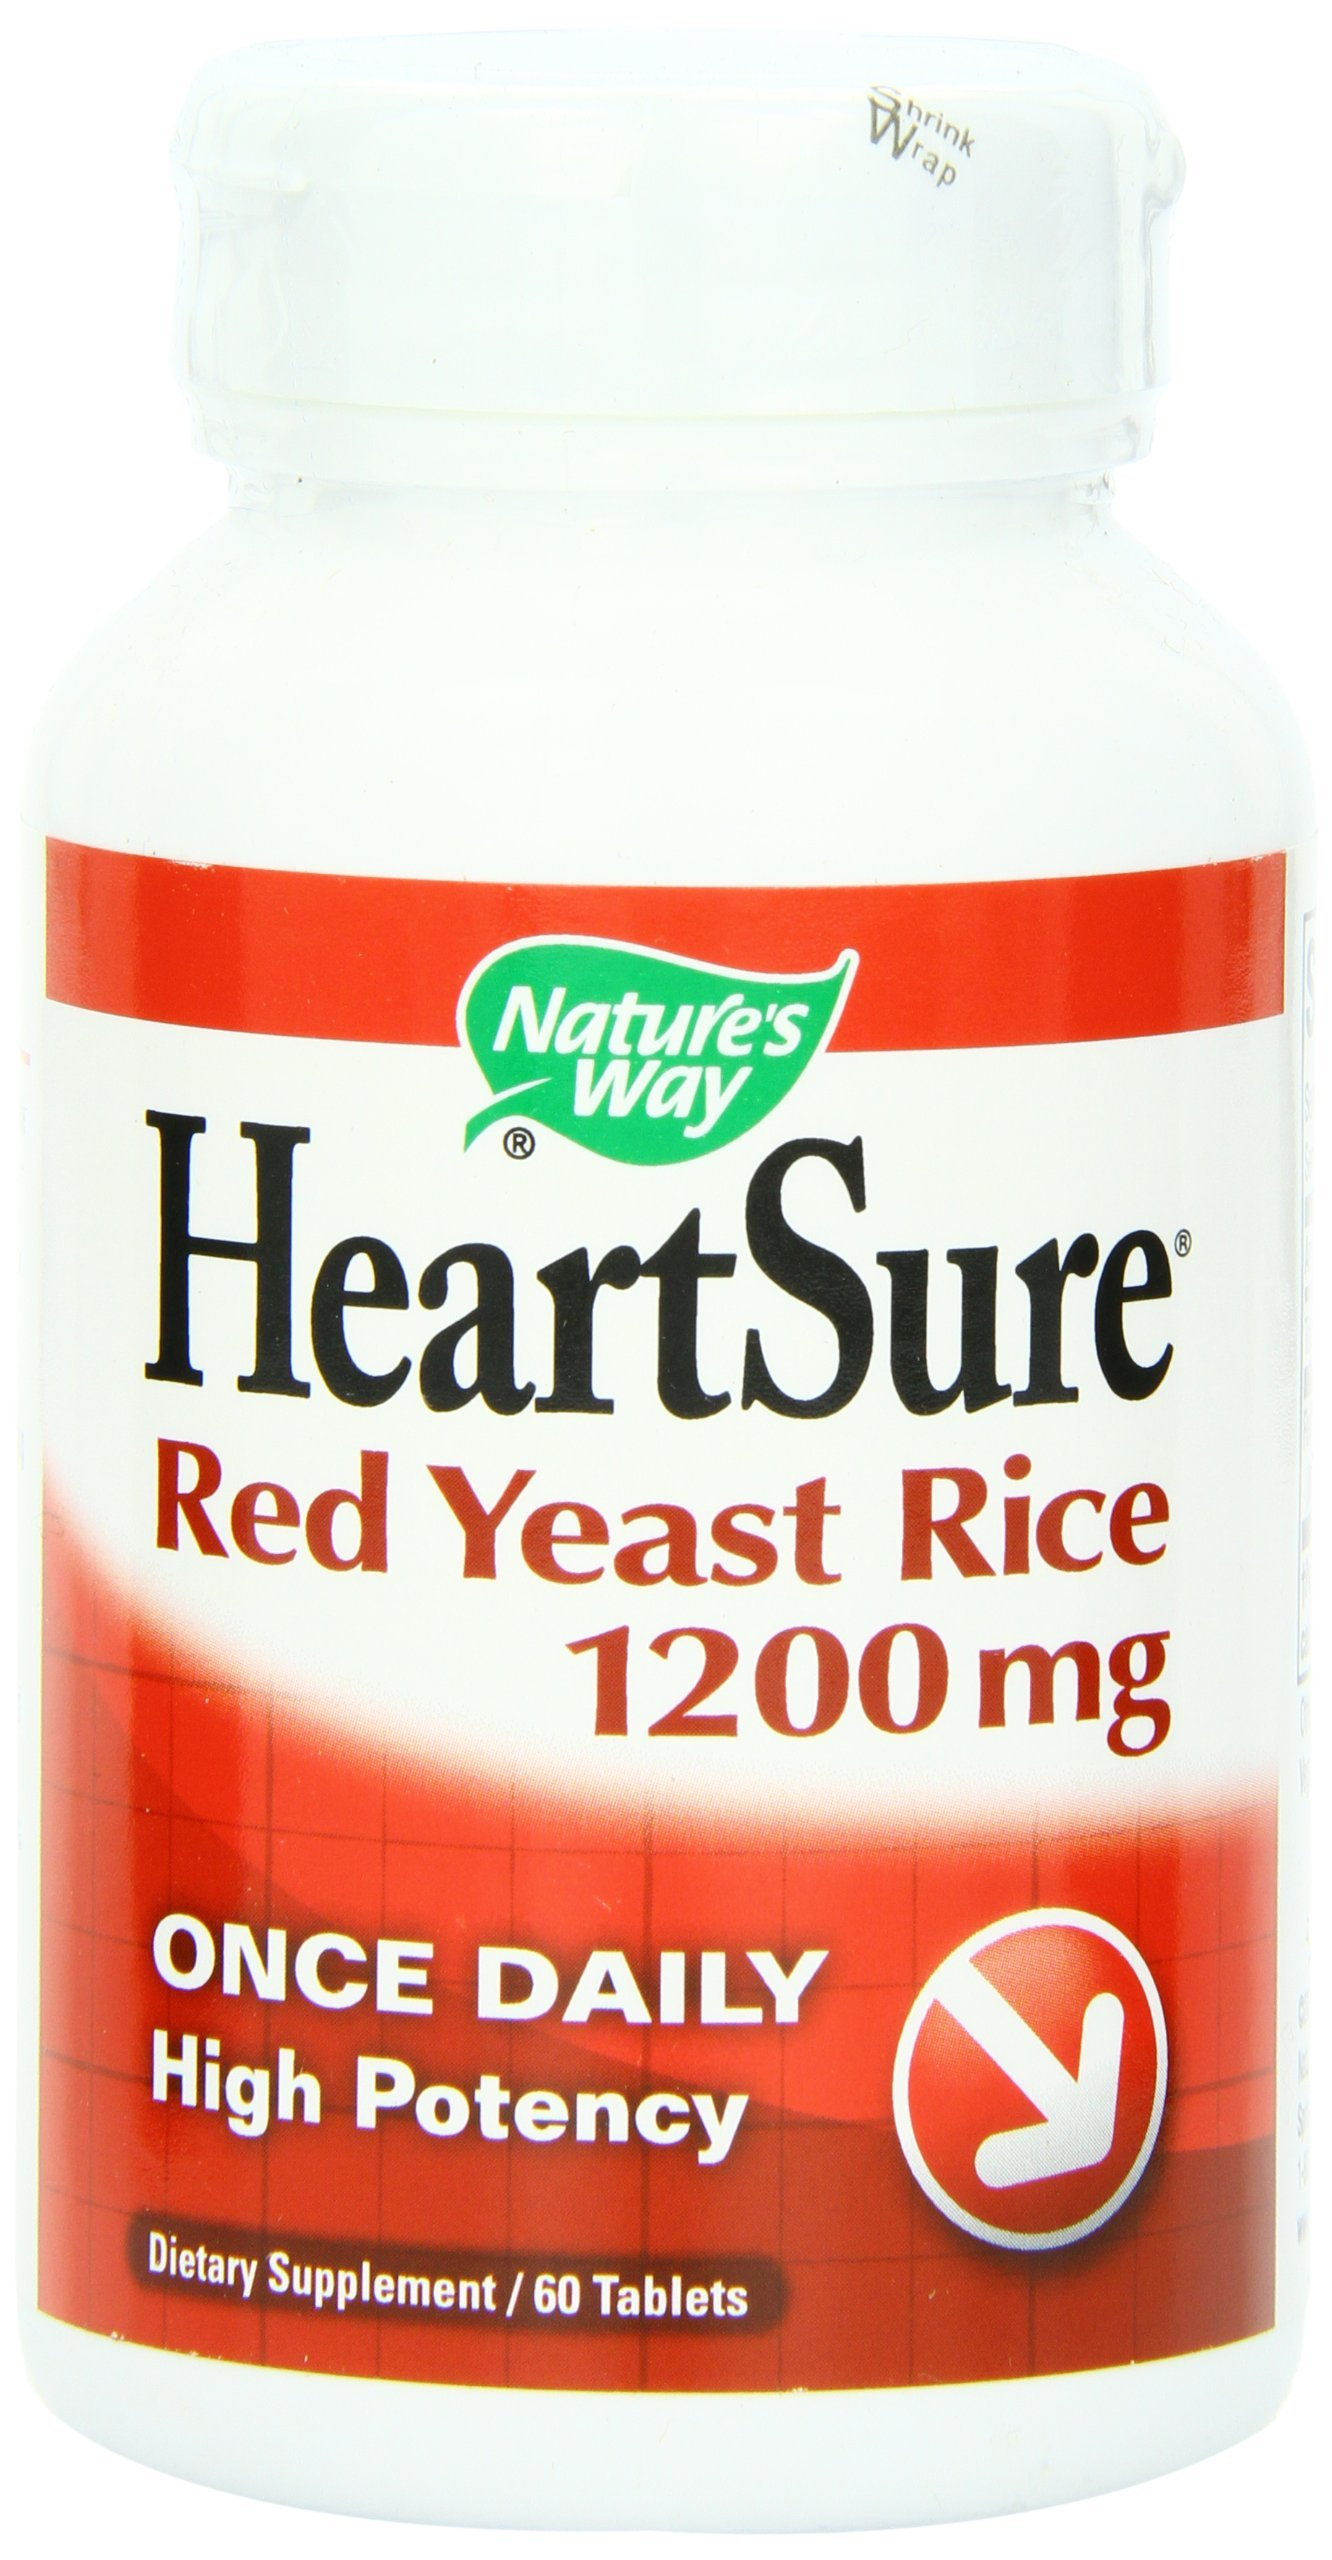 Nature's Way HeartSure Red Yeast Rice 1200 mg 60 Tabs